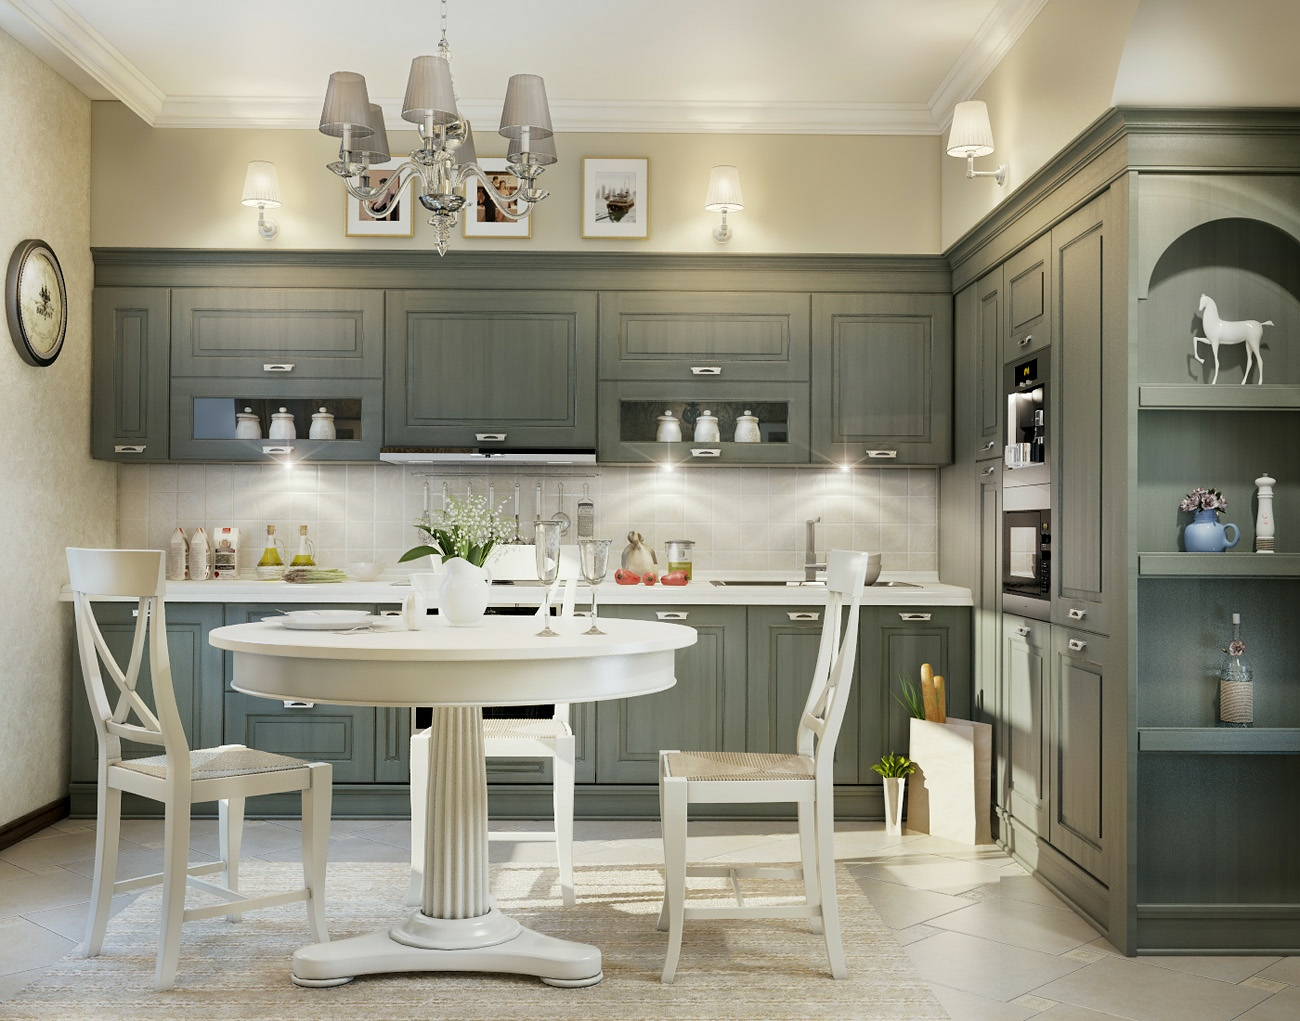 Grey traditional kitchen interior design ideas for Classic kitchen decor